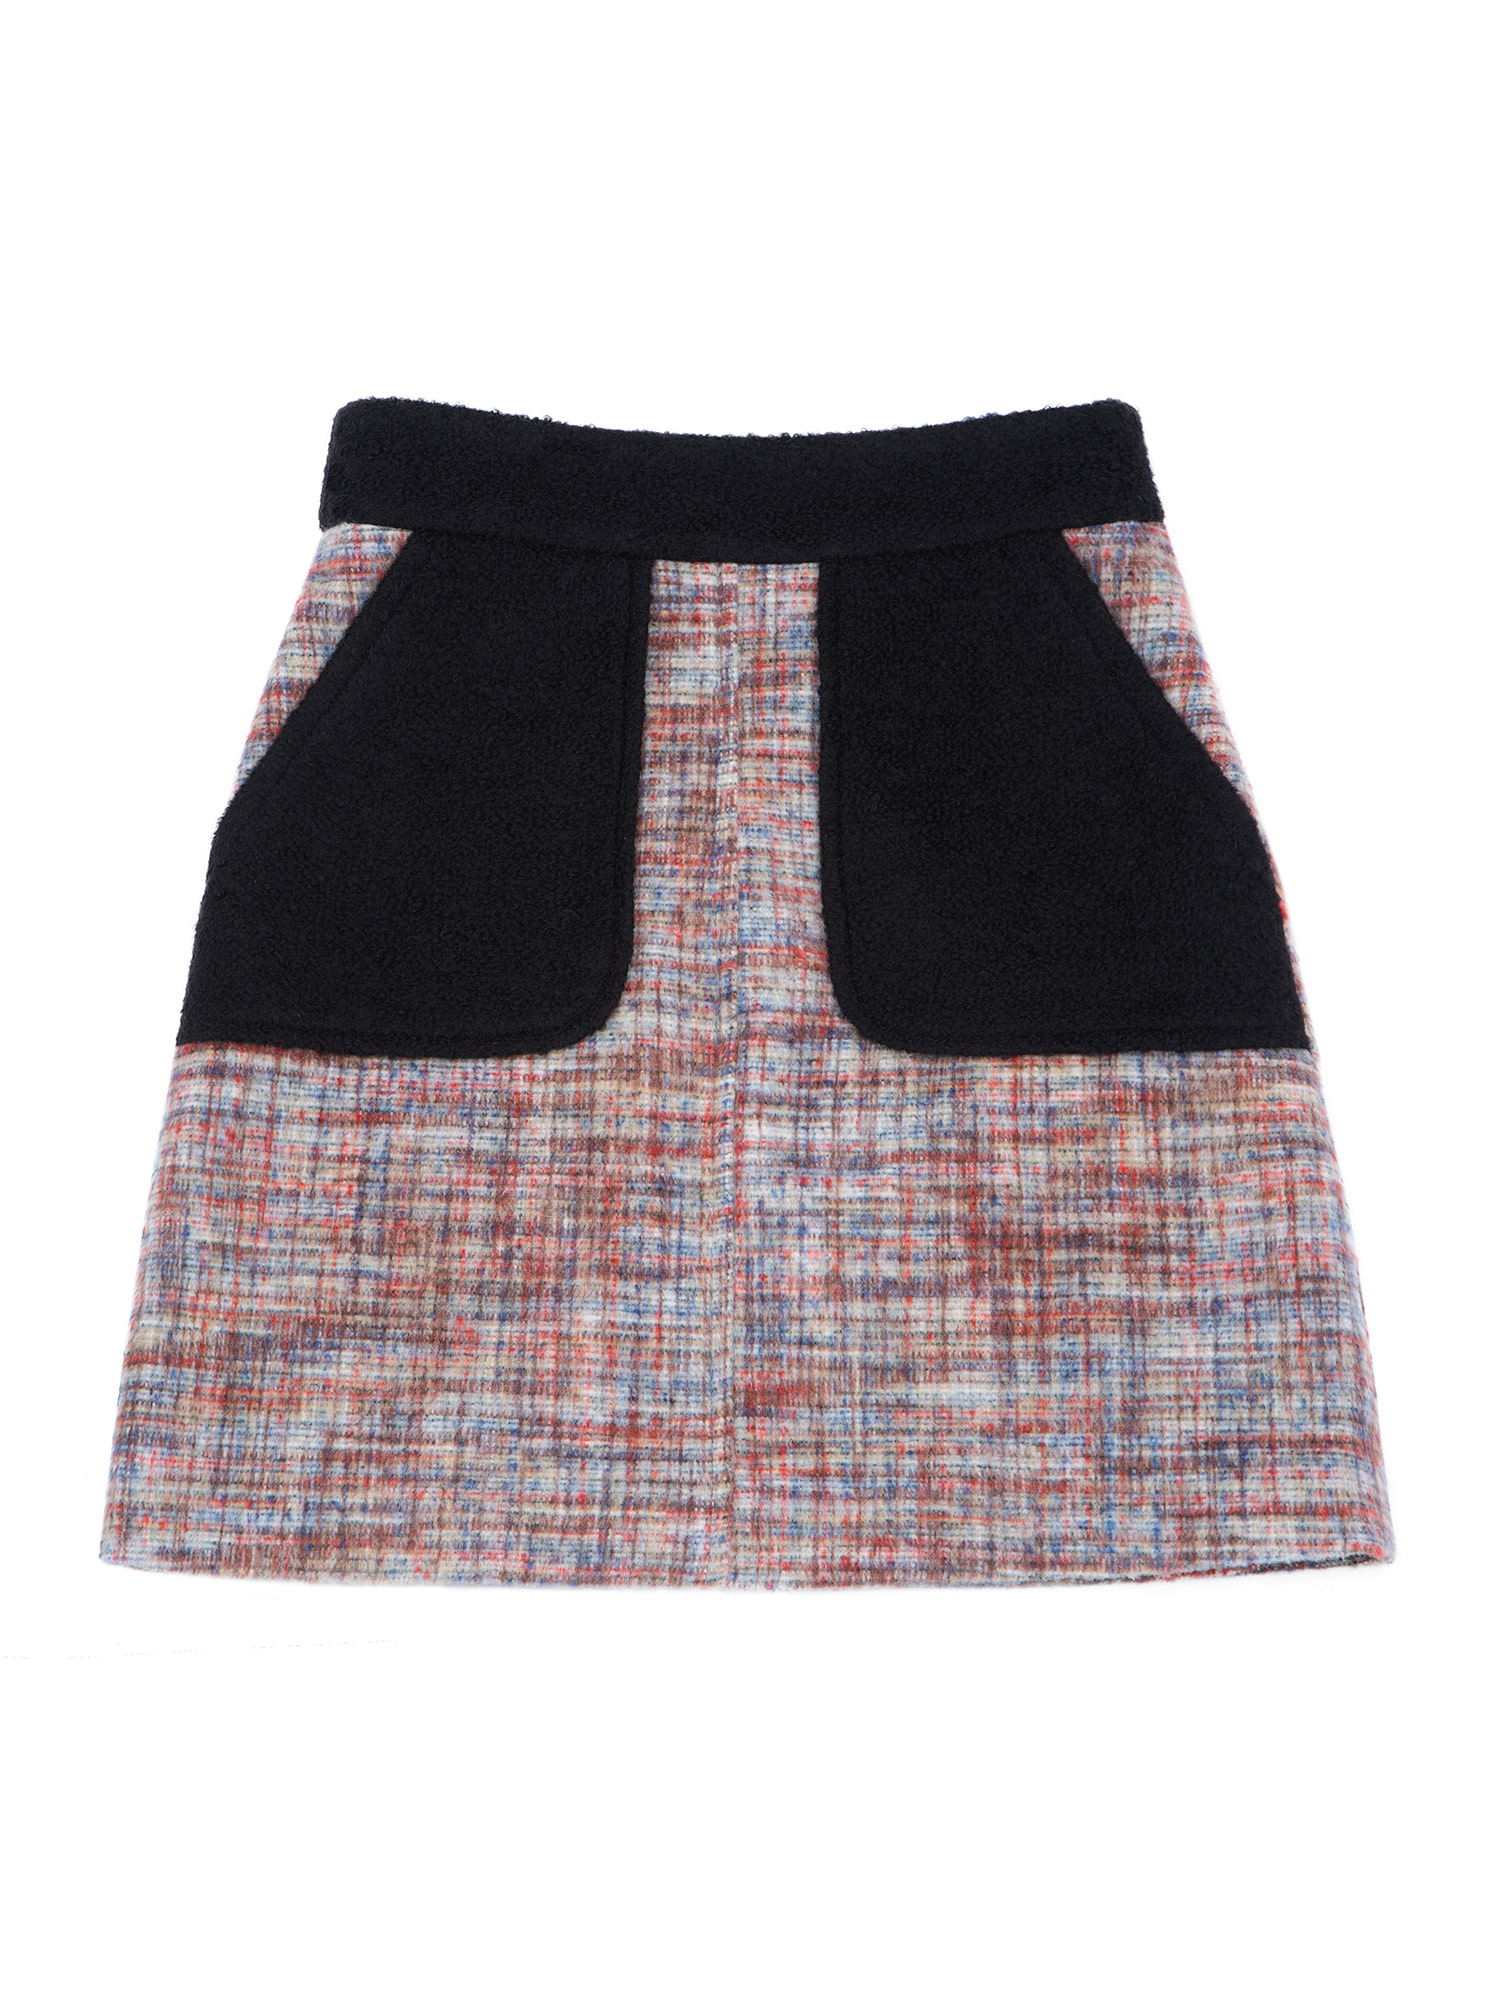 mgmg holiday sketch skirt